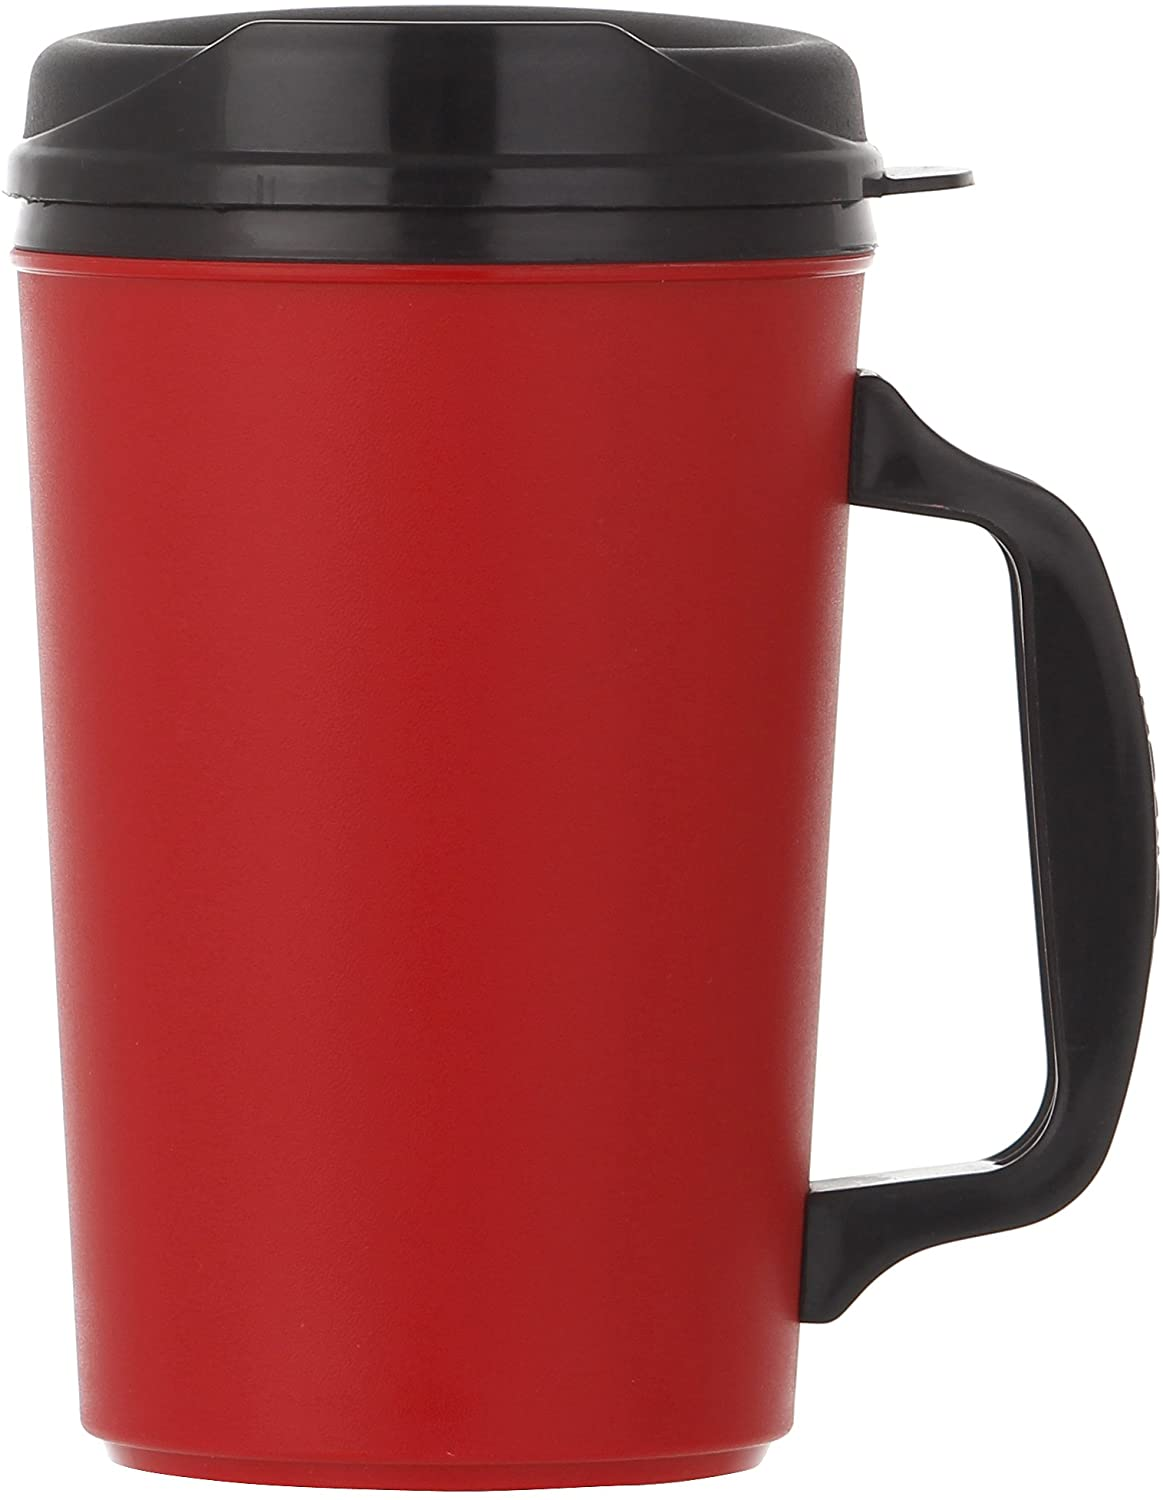 ThermoServ Foam Insulated Red Mug Ranking TOP19 20-Ounce Over item handling ☆